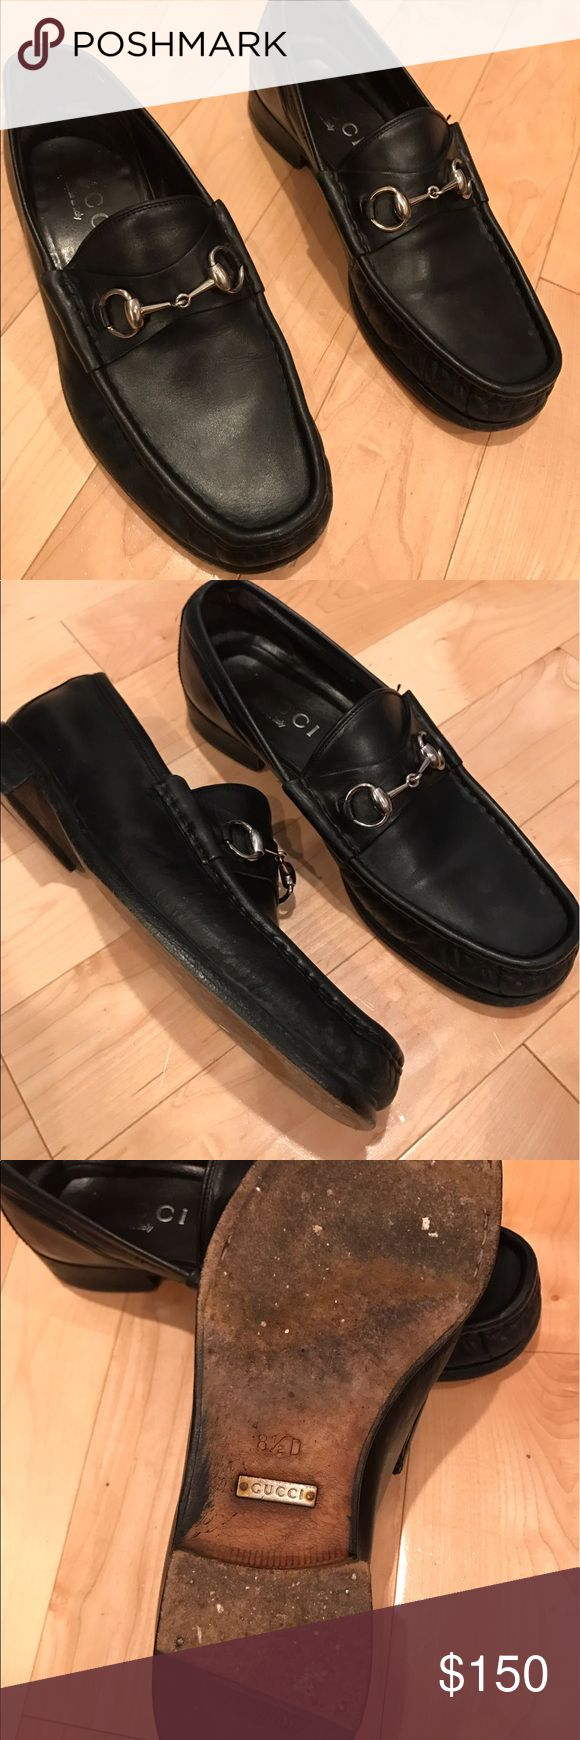 Men's Gucci Loafers Gucci Handmade Italian loafers. Men's 8.5 D. Gucci Shoes Loafers & Slip-Ons